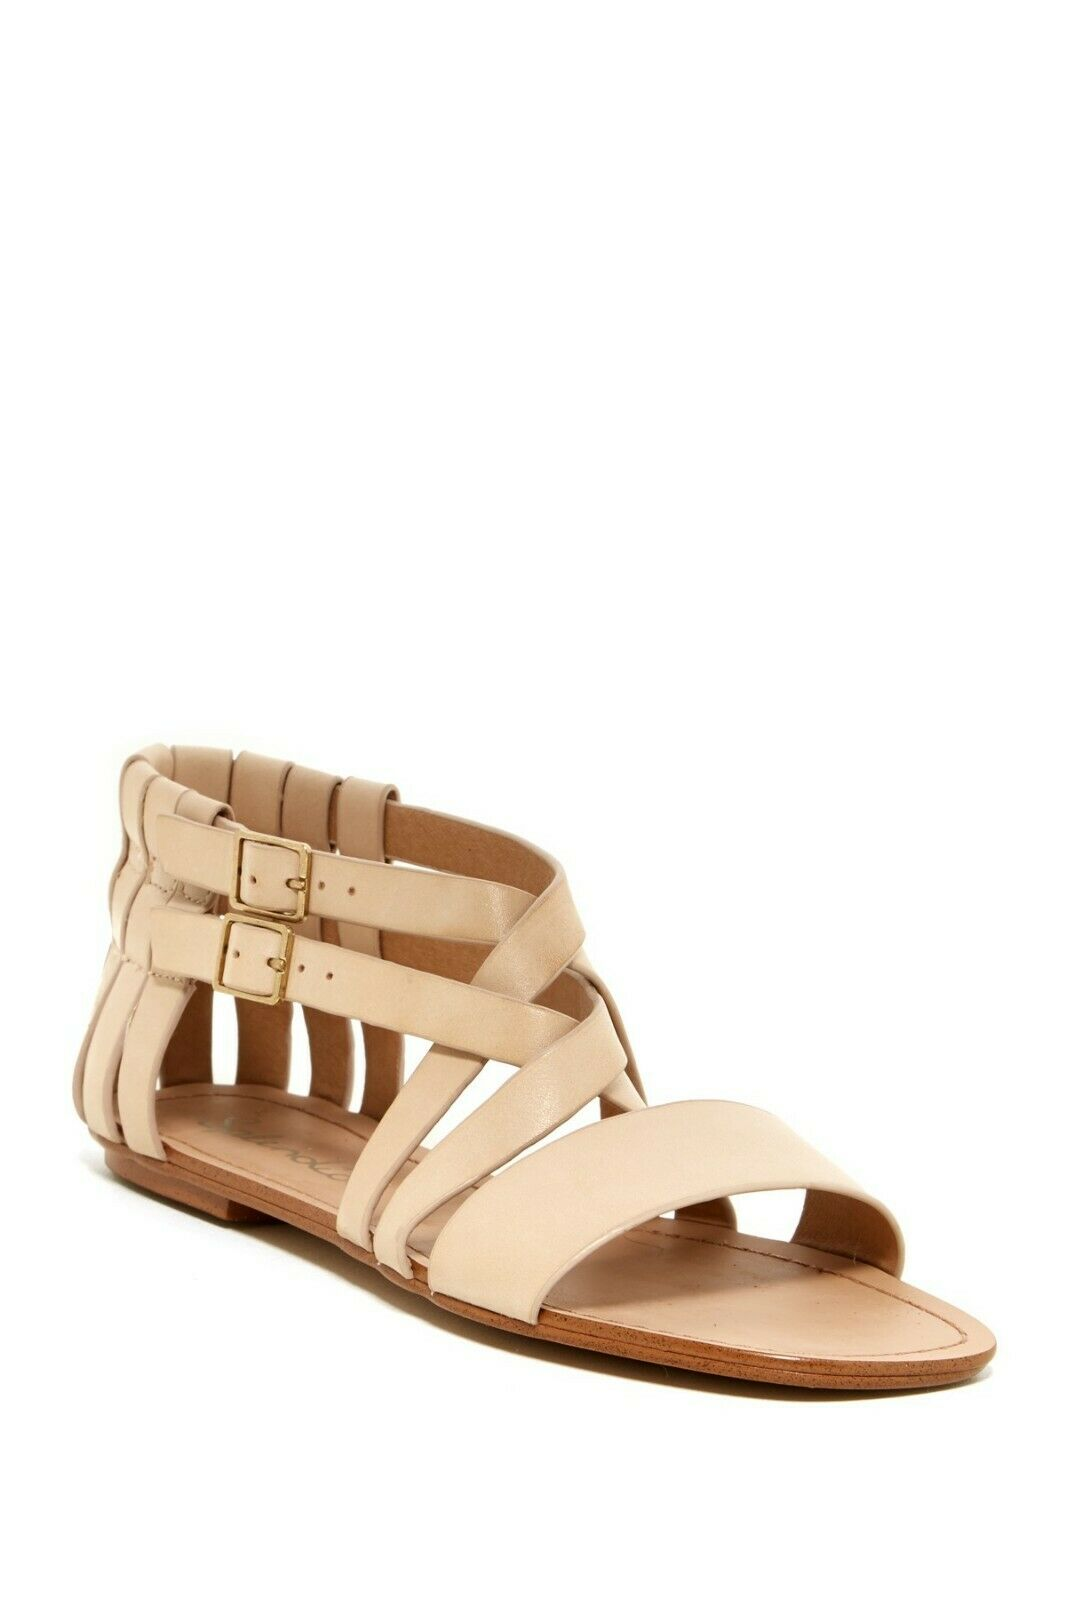 Splendid Talia Sandals in Nude Leather Wouomo US Dimensiones 6.5 & 7.5 MSRP  108